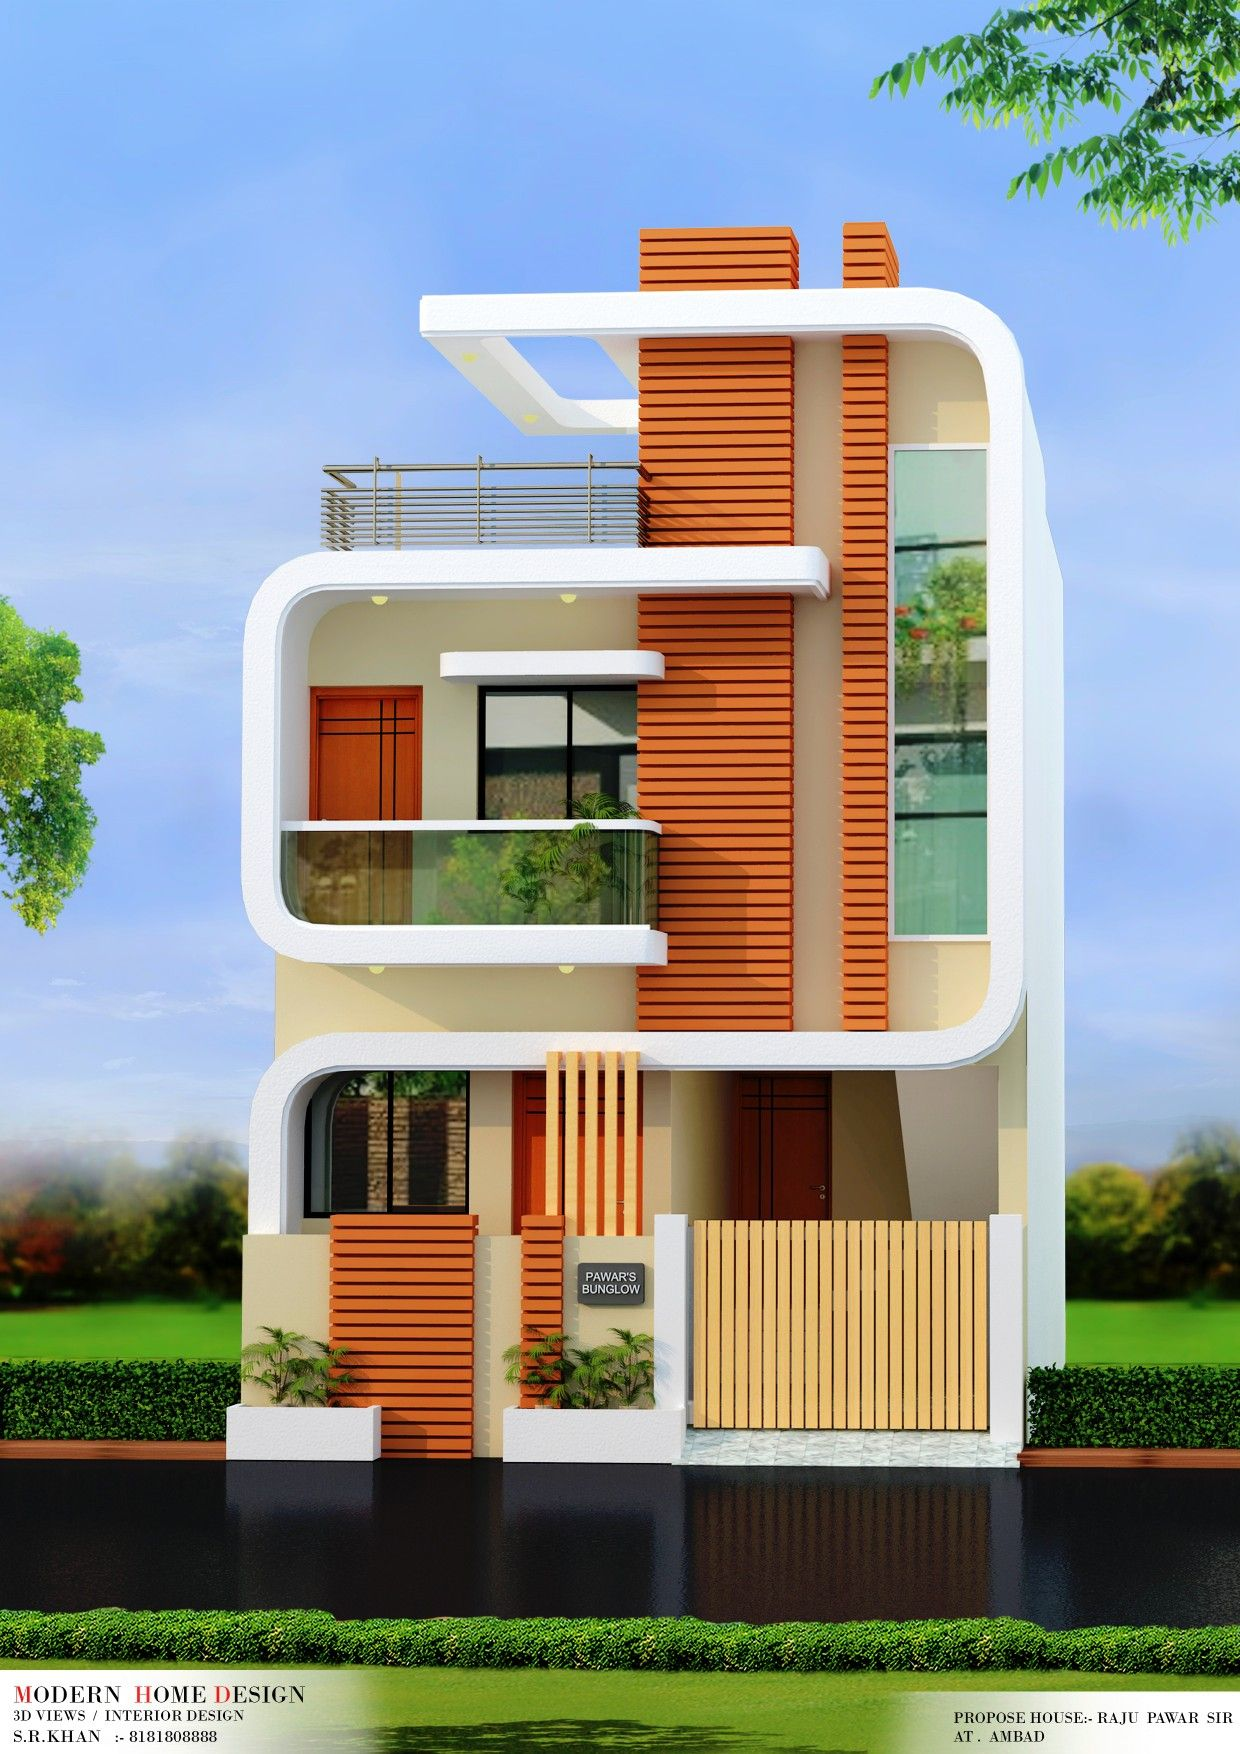 63cffcd786ff9dfb65d672189c6d6ba2 - 33+ Village Small House Front Design  Pictures